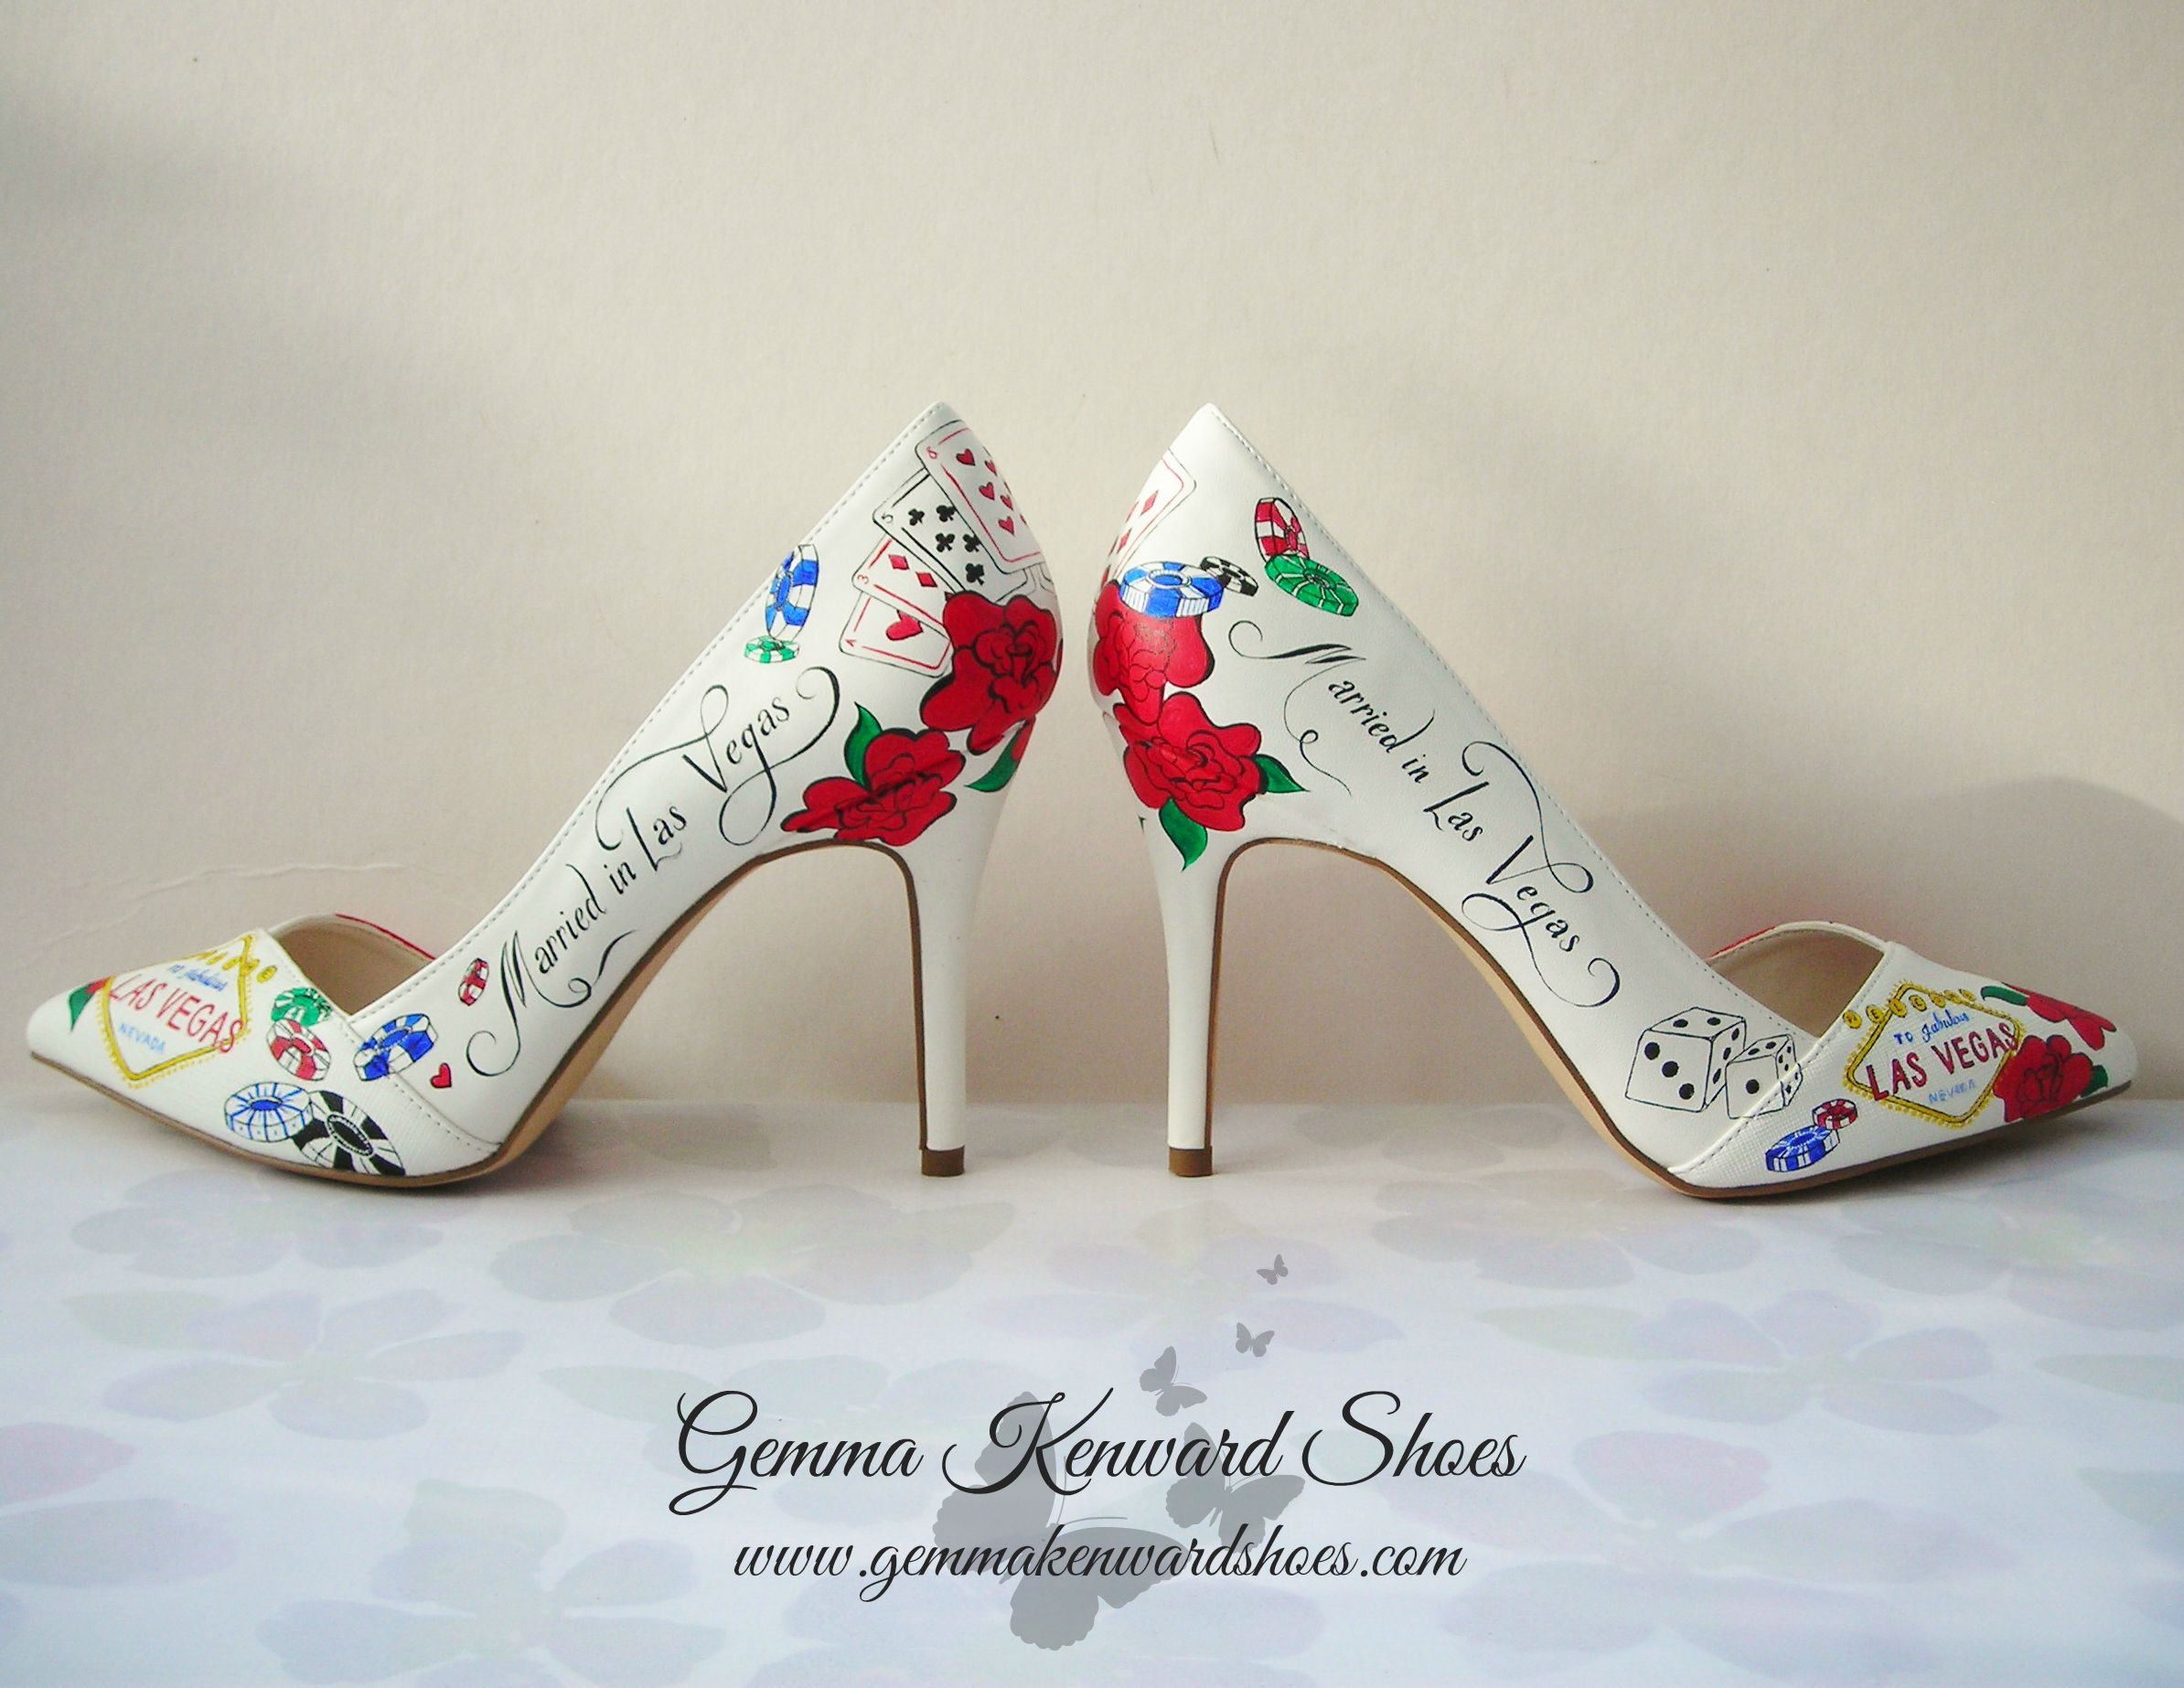 Married in Vegas Wedding shoes personalised with dice. chips and the Las Vegas sign